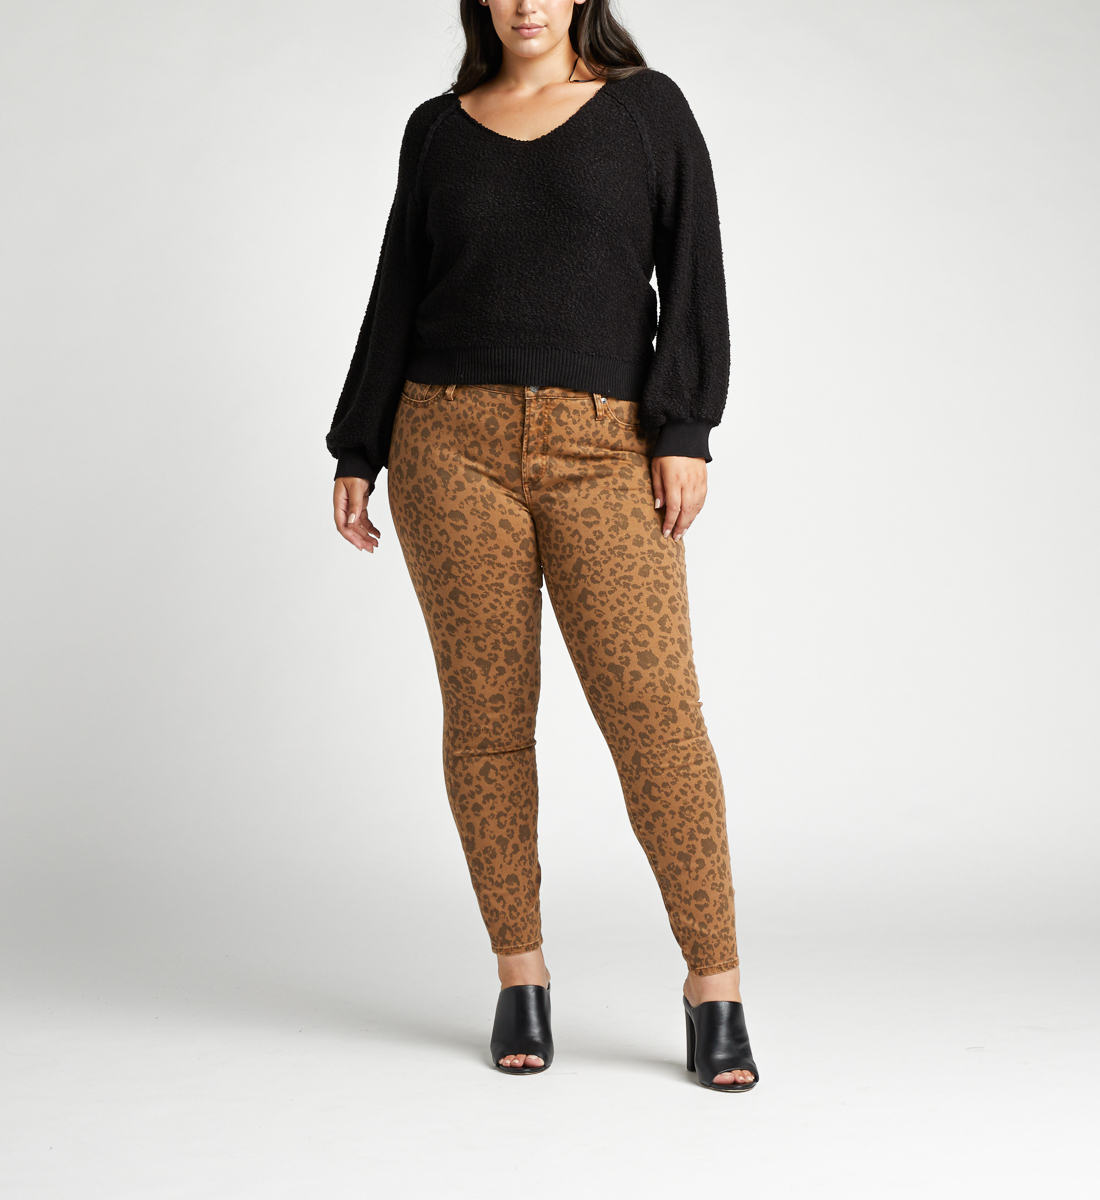 Most Wanted Mid Rise Skinny Plus Size Jeans,Tan Front